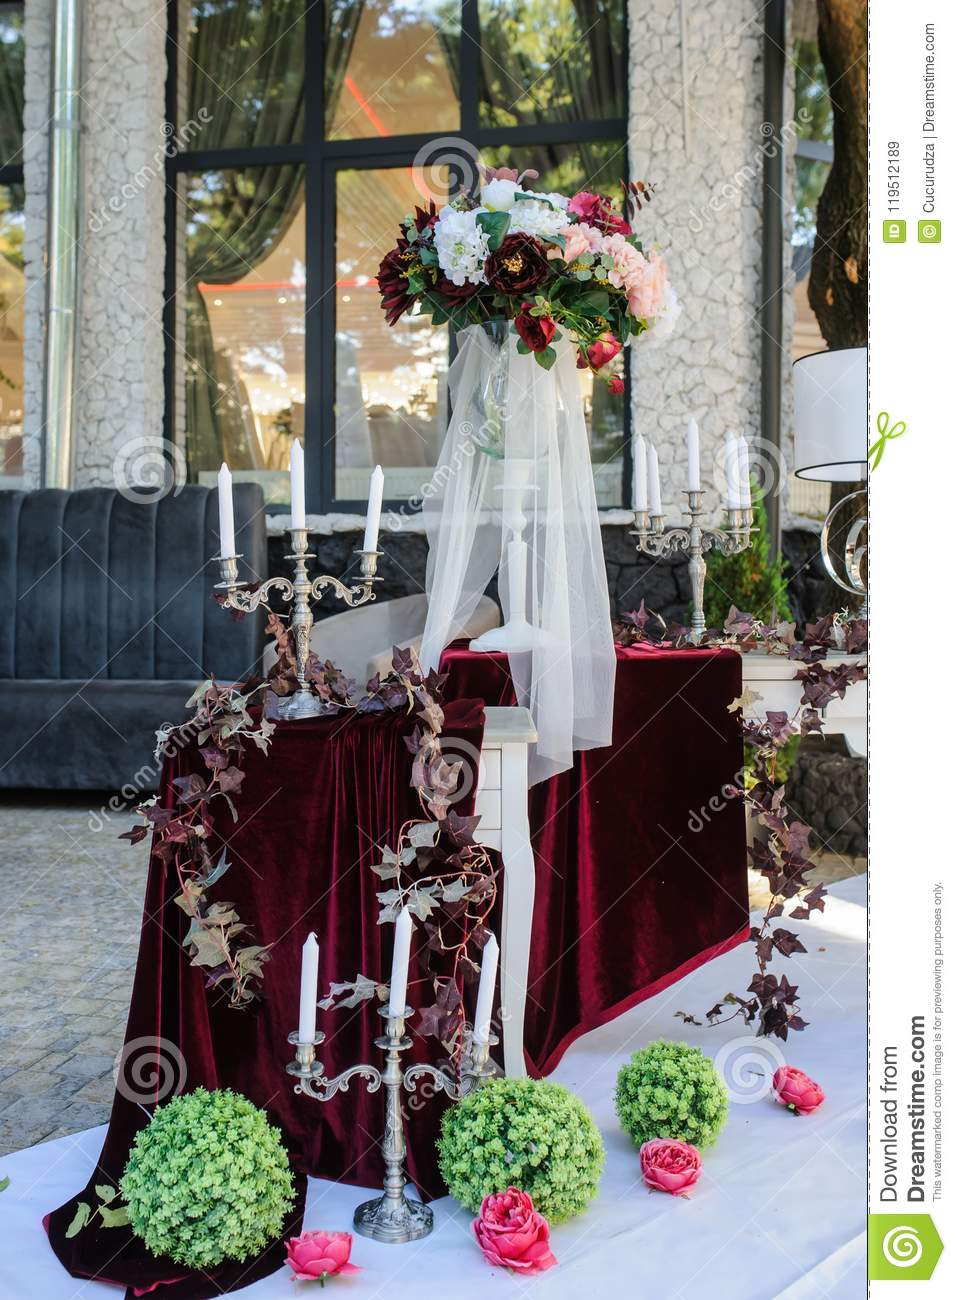 Wedding Decoration White Vintage Style With Red Claret Flower